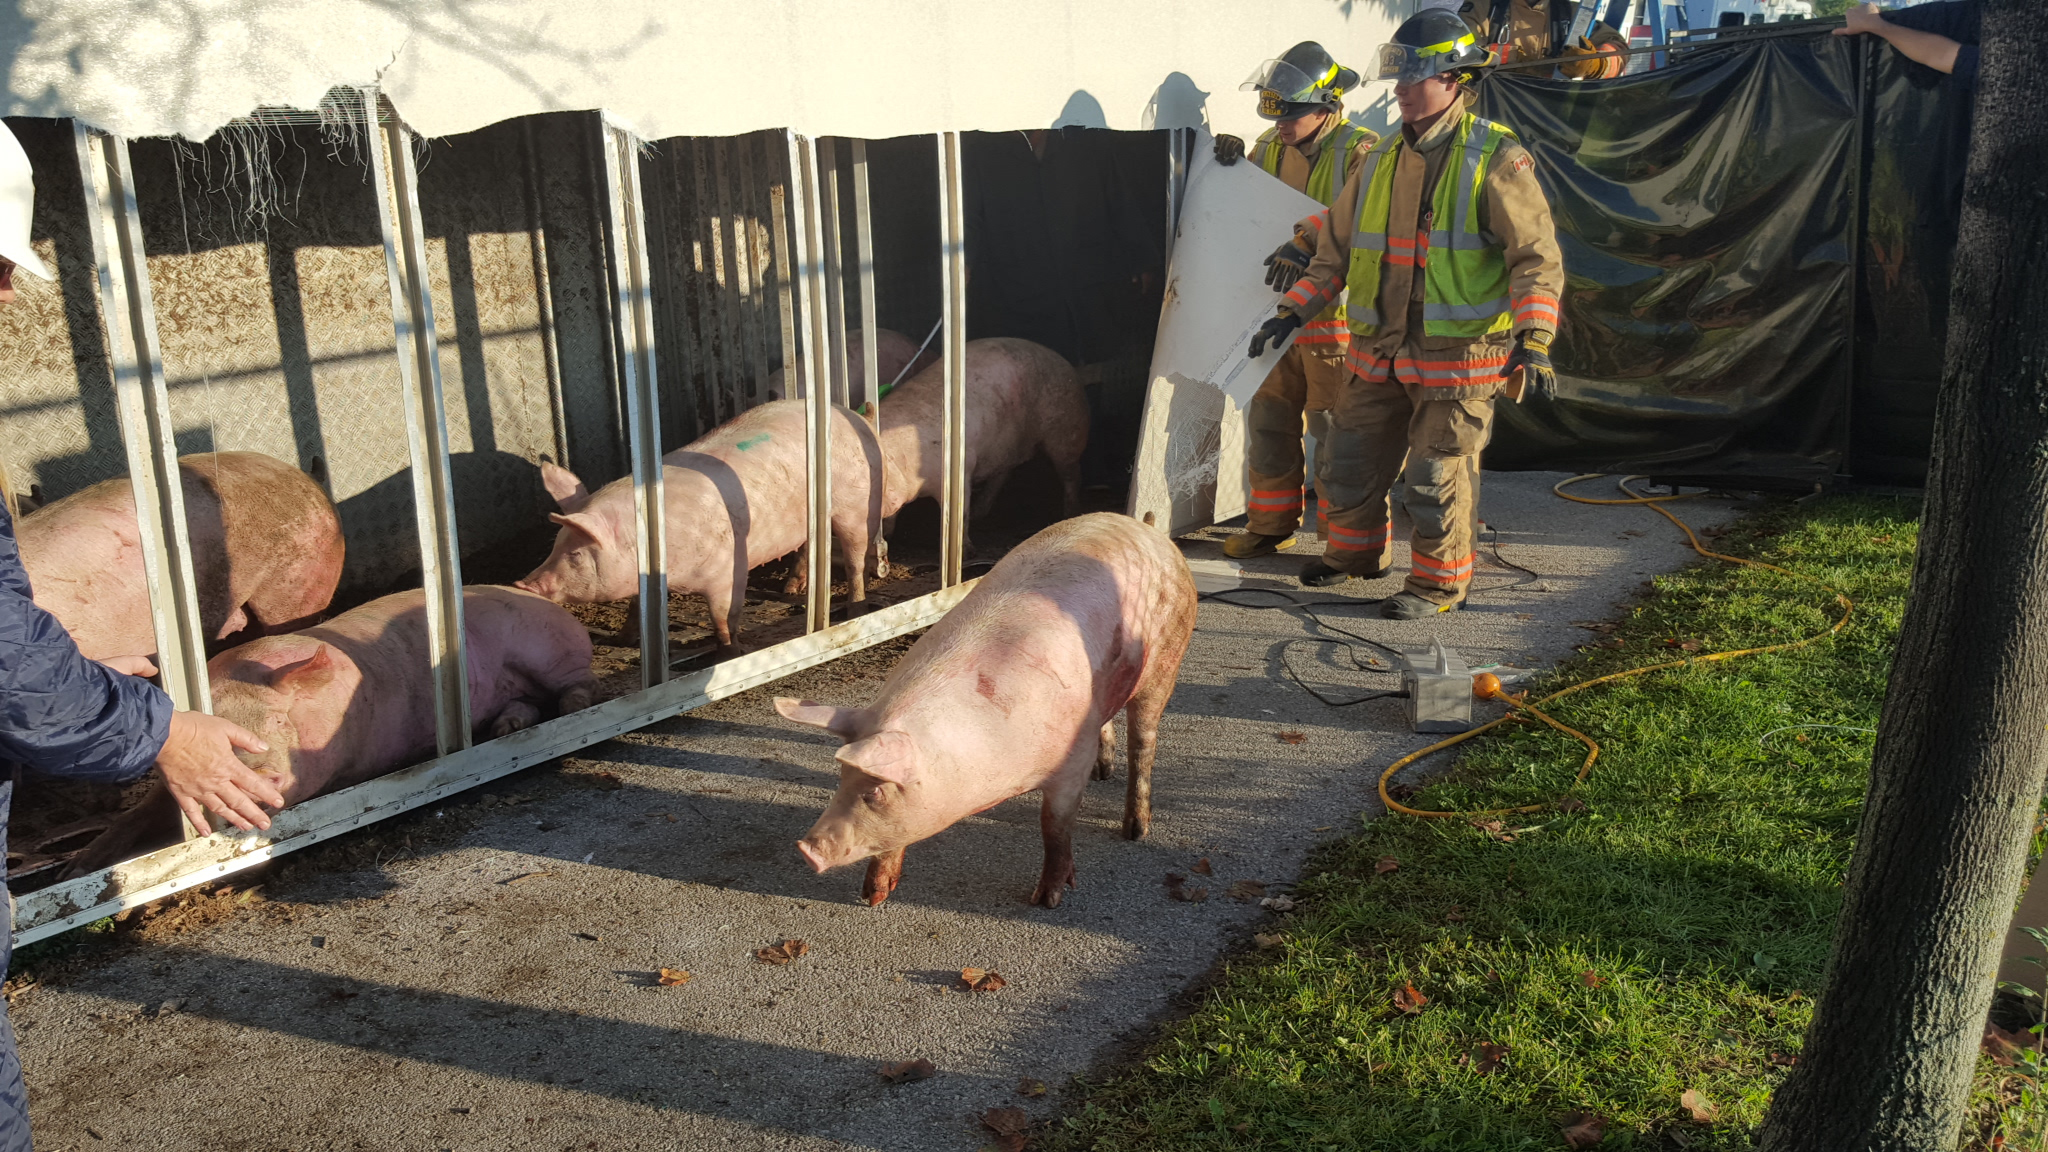 Pigs being corralled after a truck overturned at a slaughterhouse entrance on Oct. 5, 2016. Image credit: David Ritchie